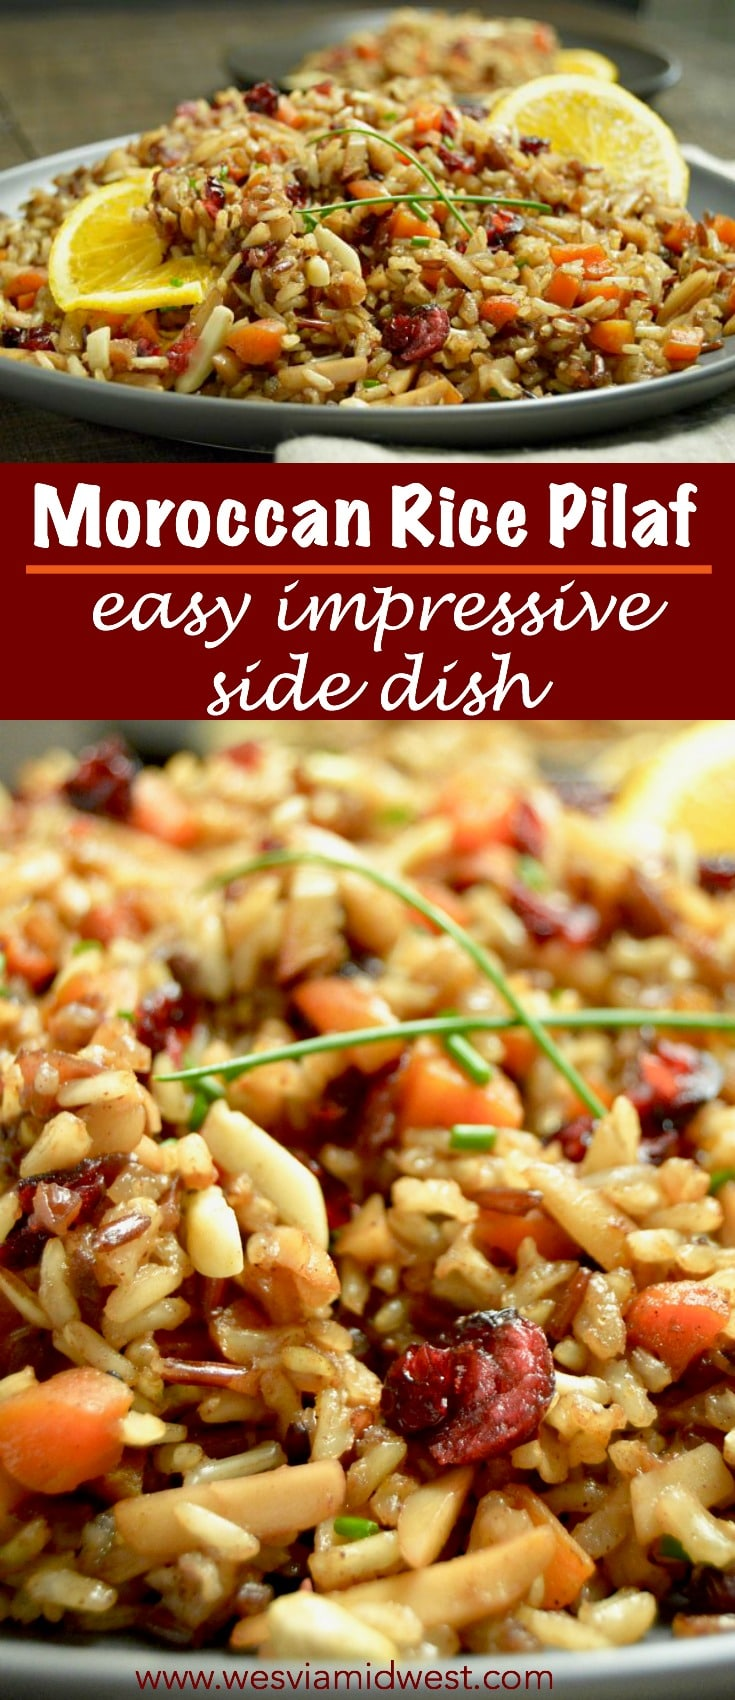 Moroccan Rice Pilaf: Fragrant,  Fluffy and Delicious: Super easy to make and impressive enough your guests will love it as a side dish for any holiday party! GF, DF, V